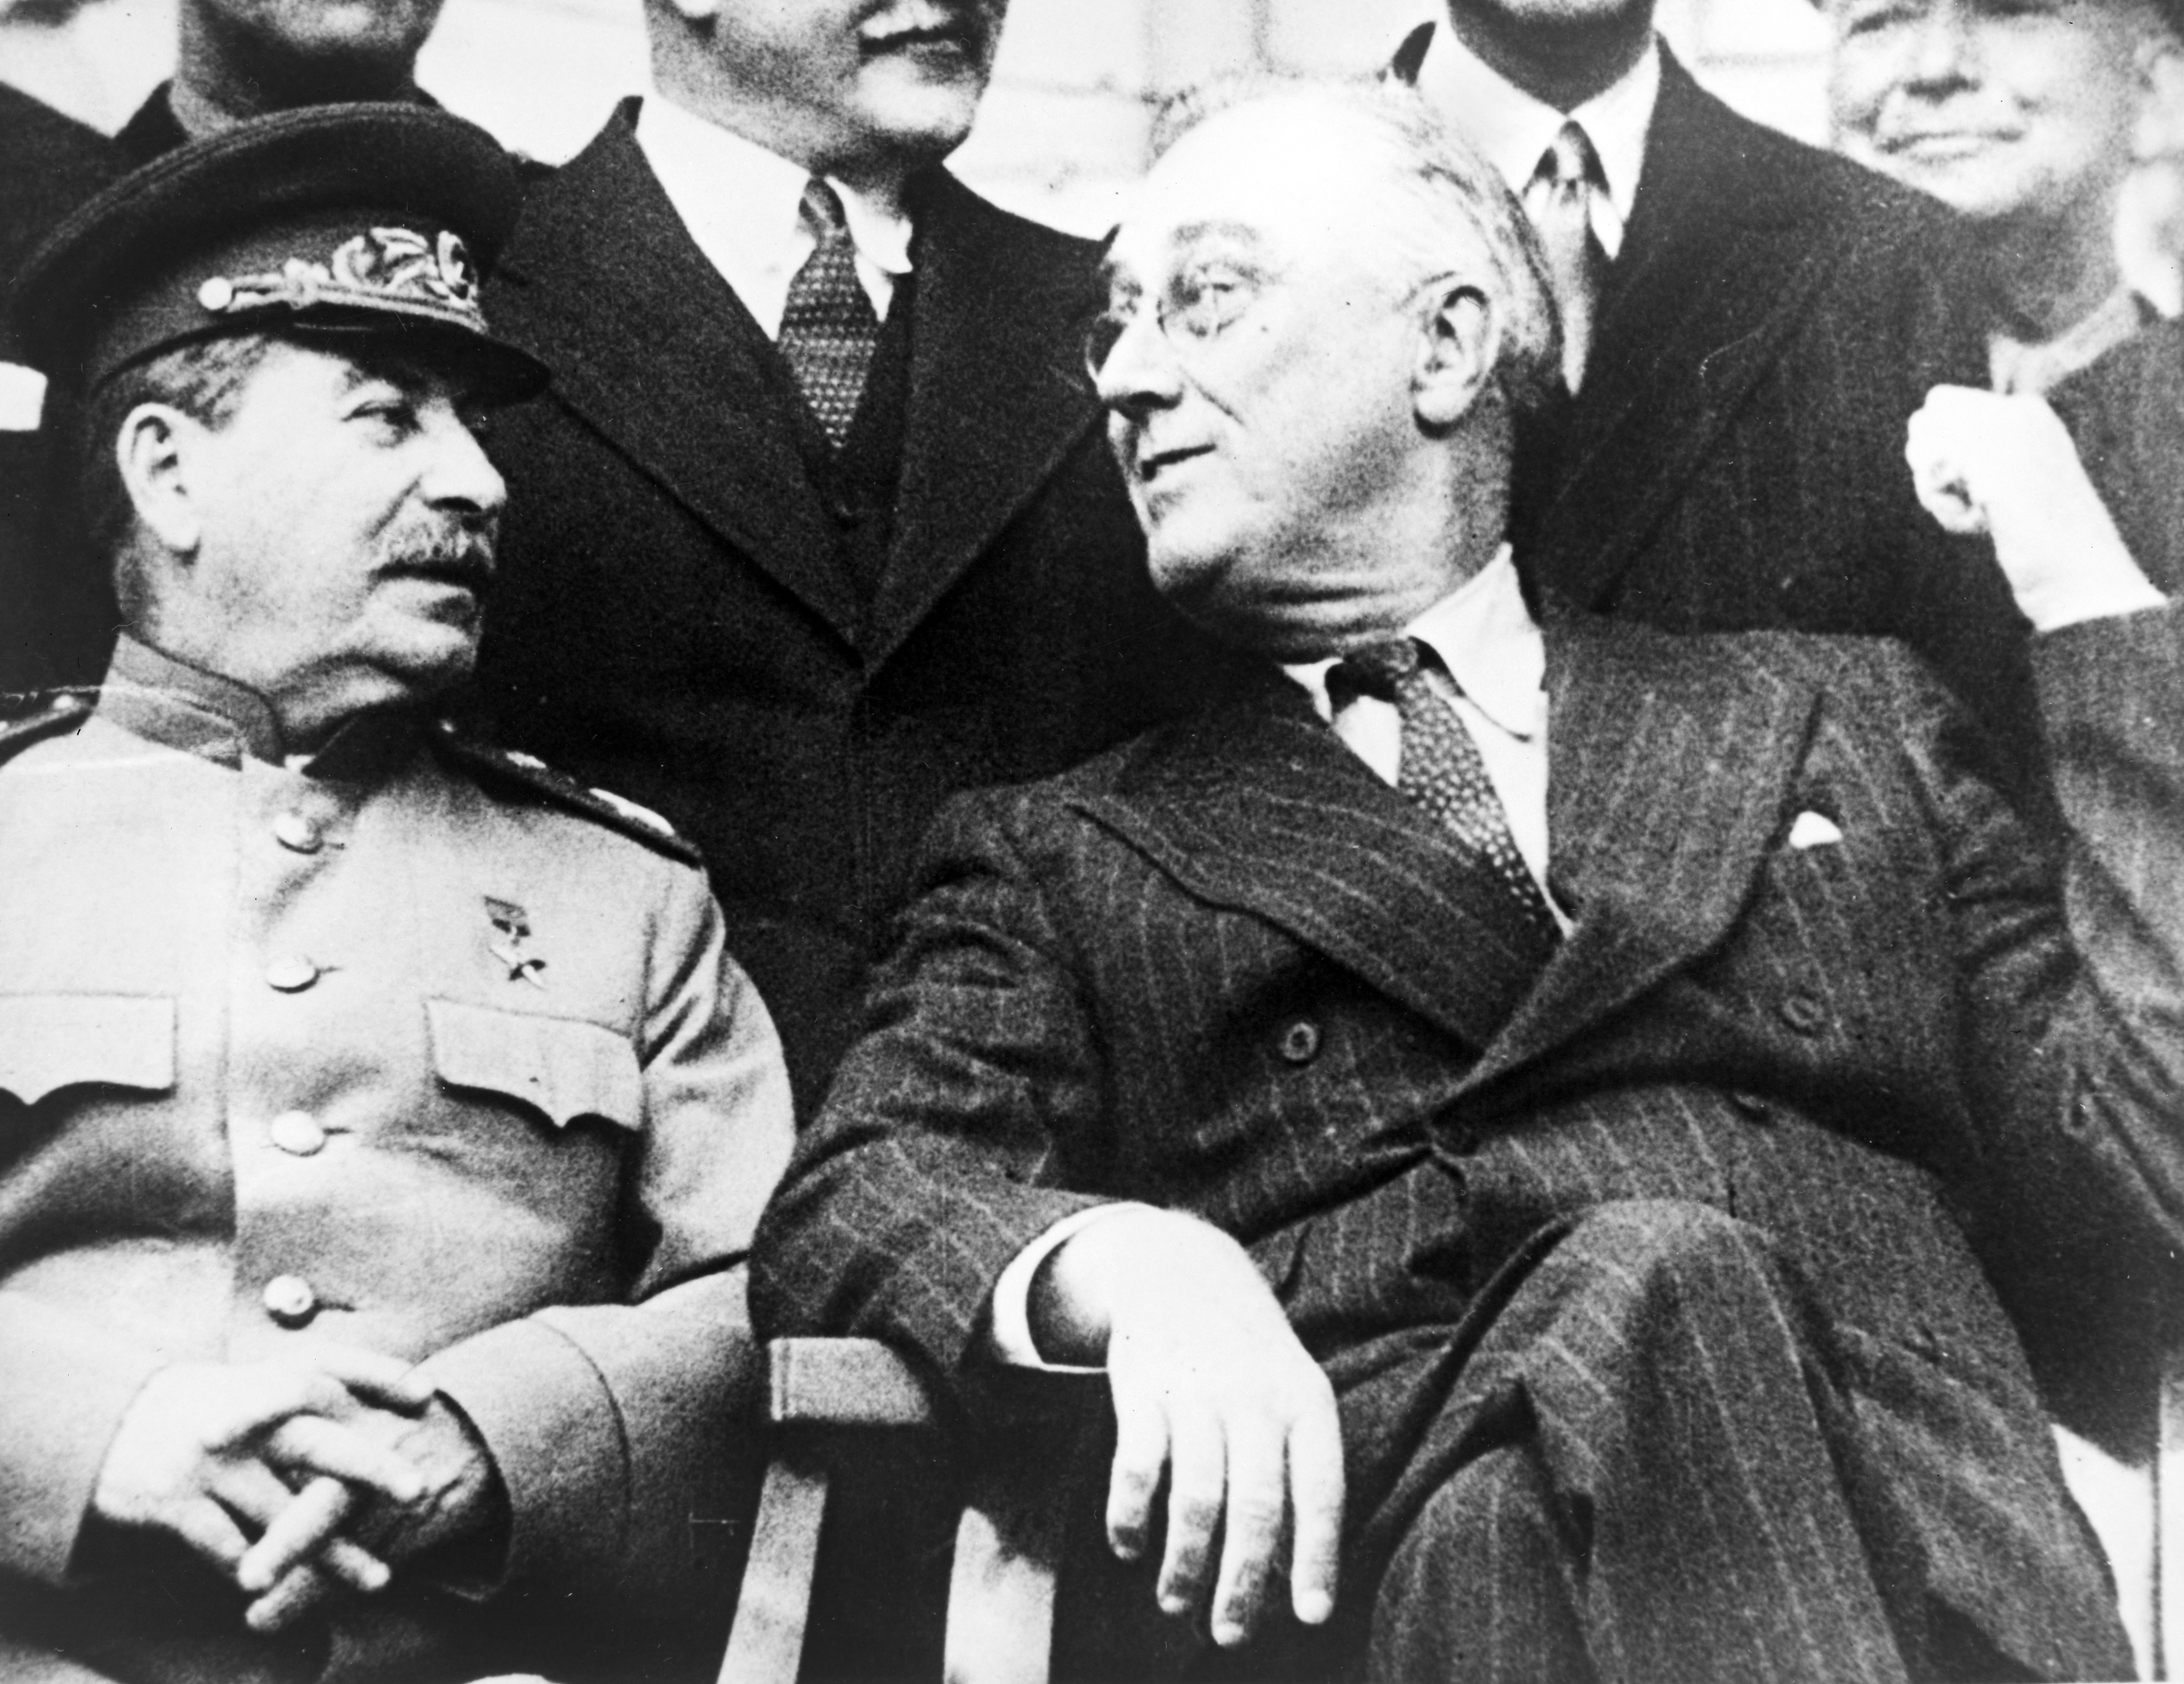 Stalin_and_Roosevelt_at_Tehran_Conference_cph.3c35312